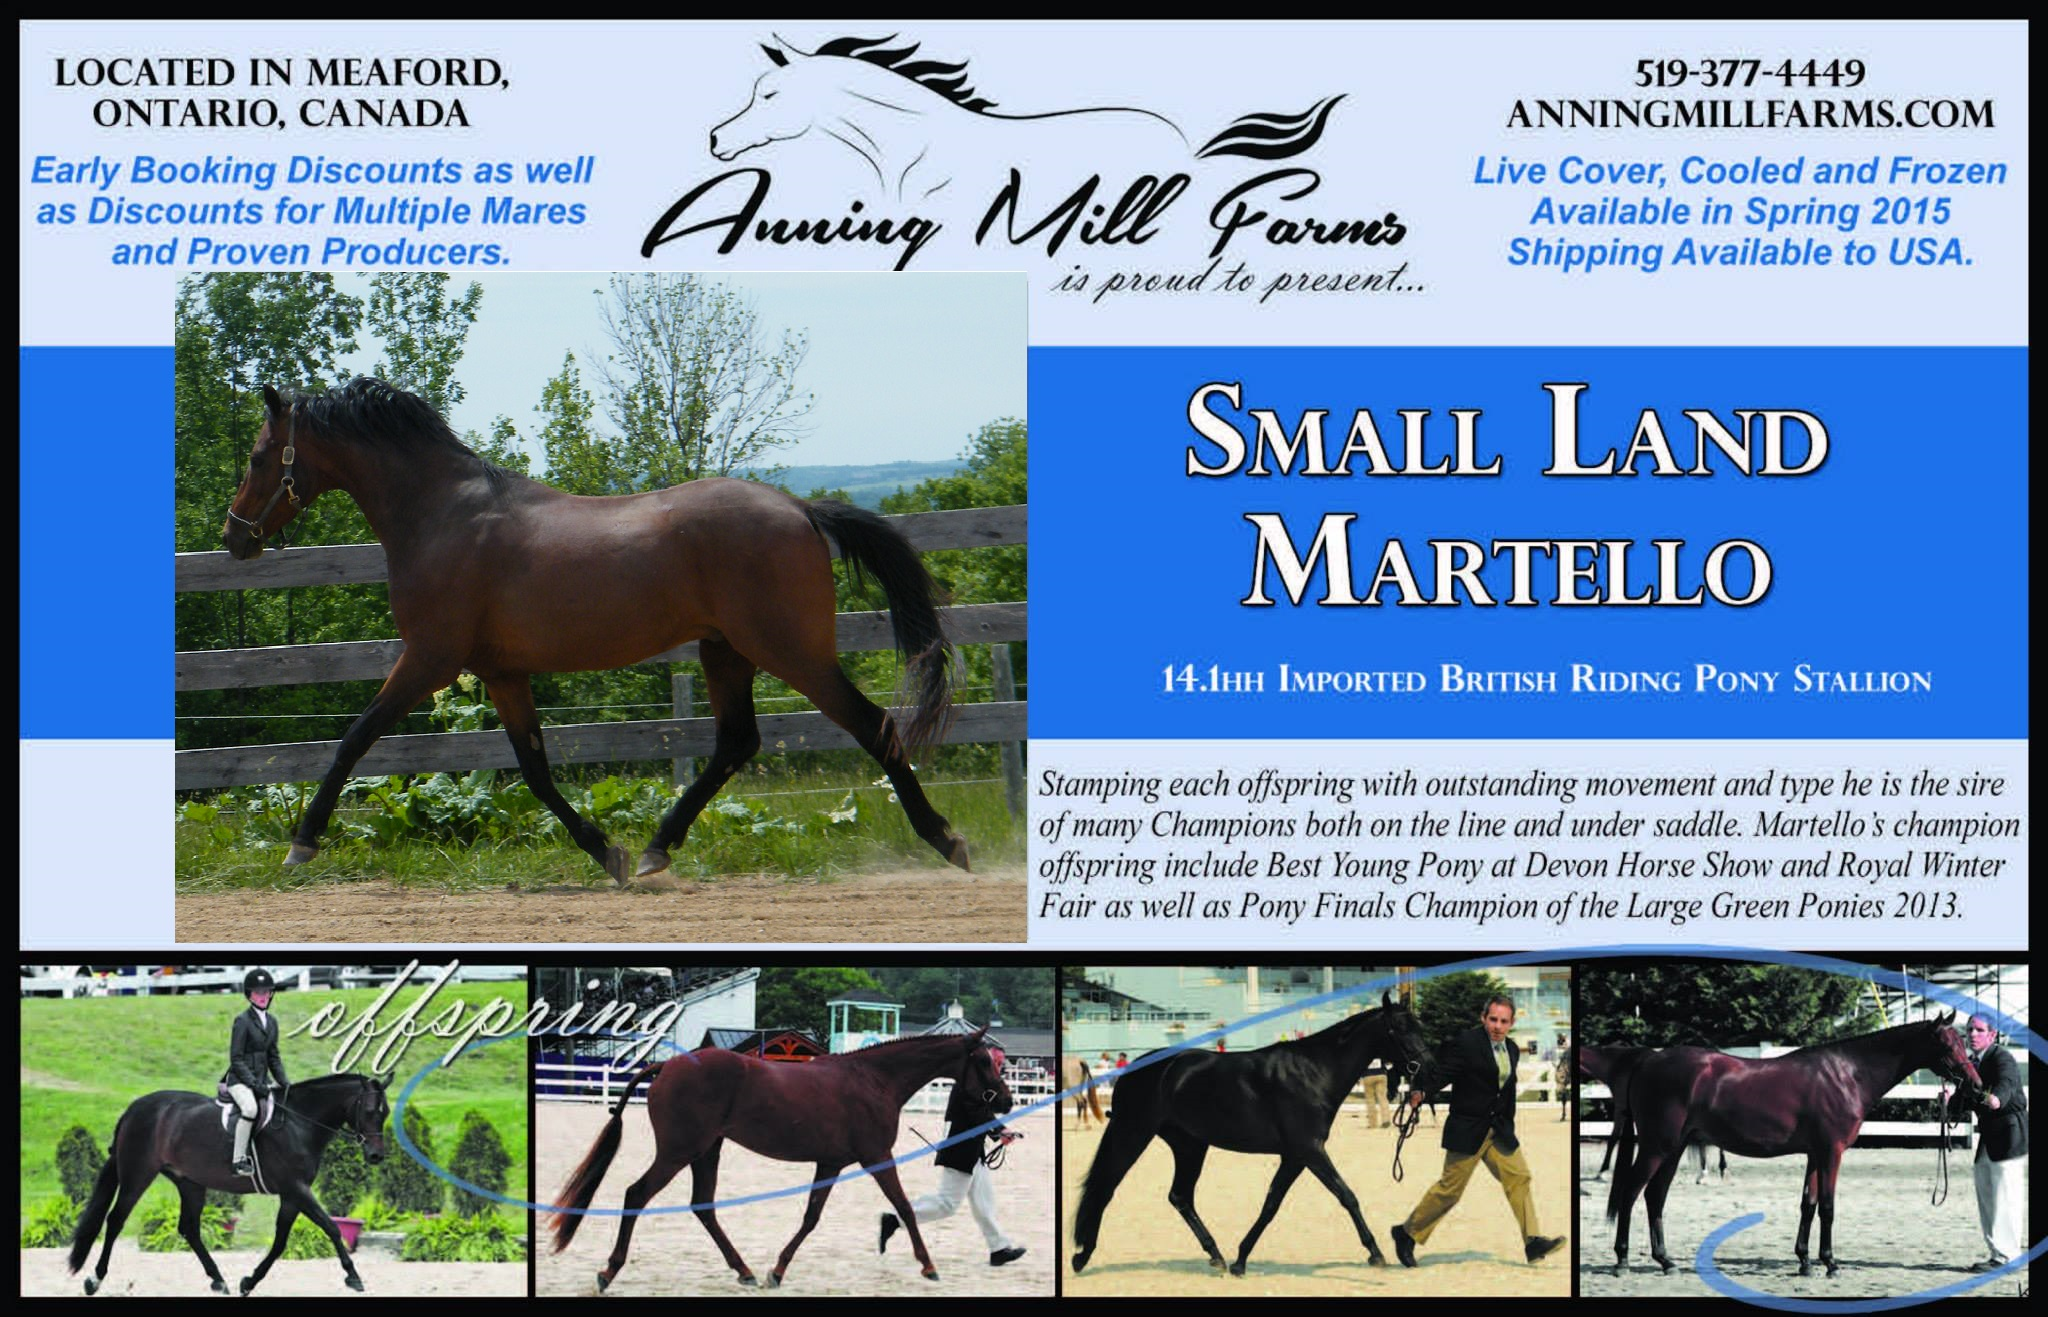 Small land martello 2015